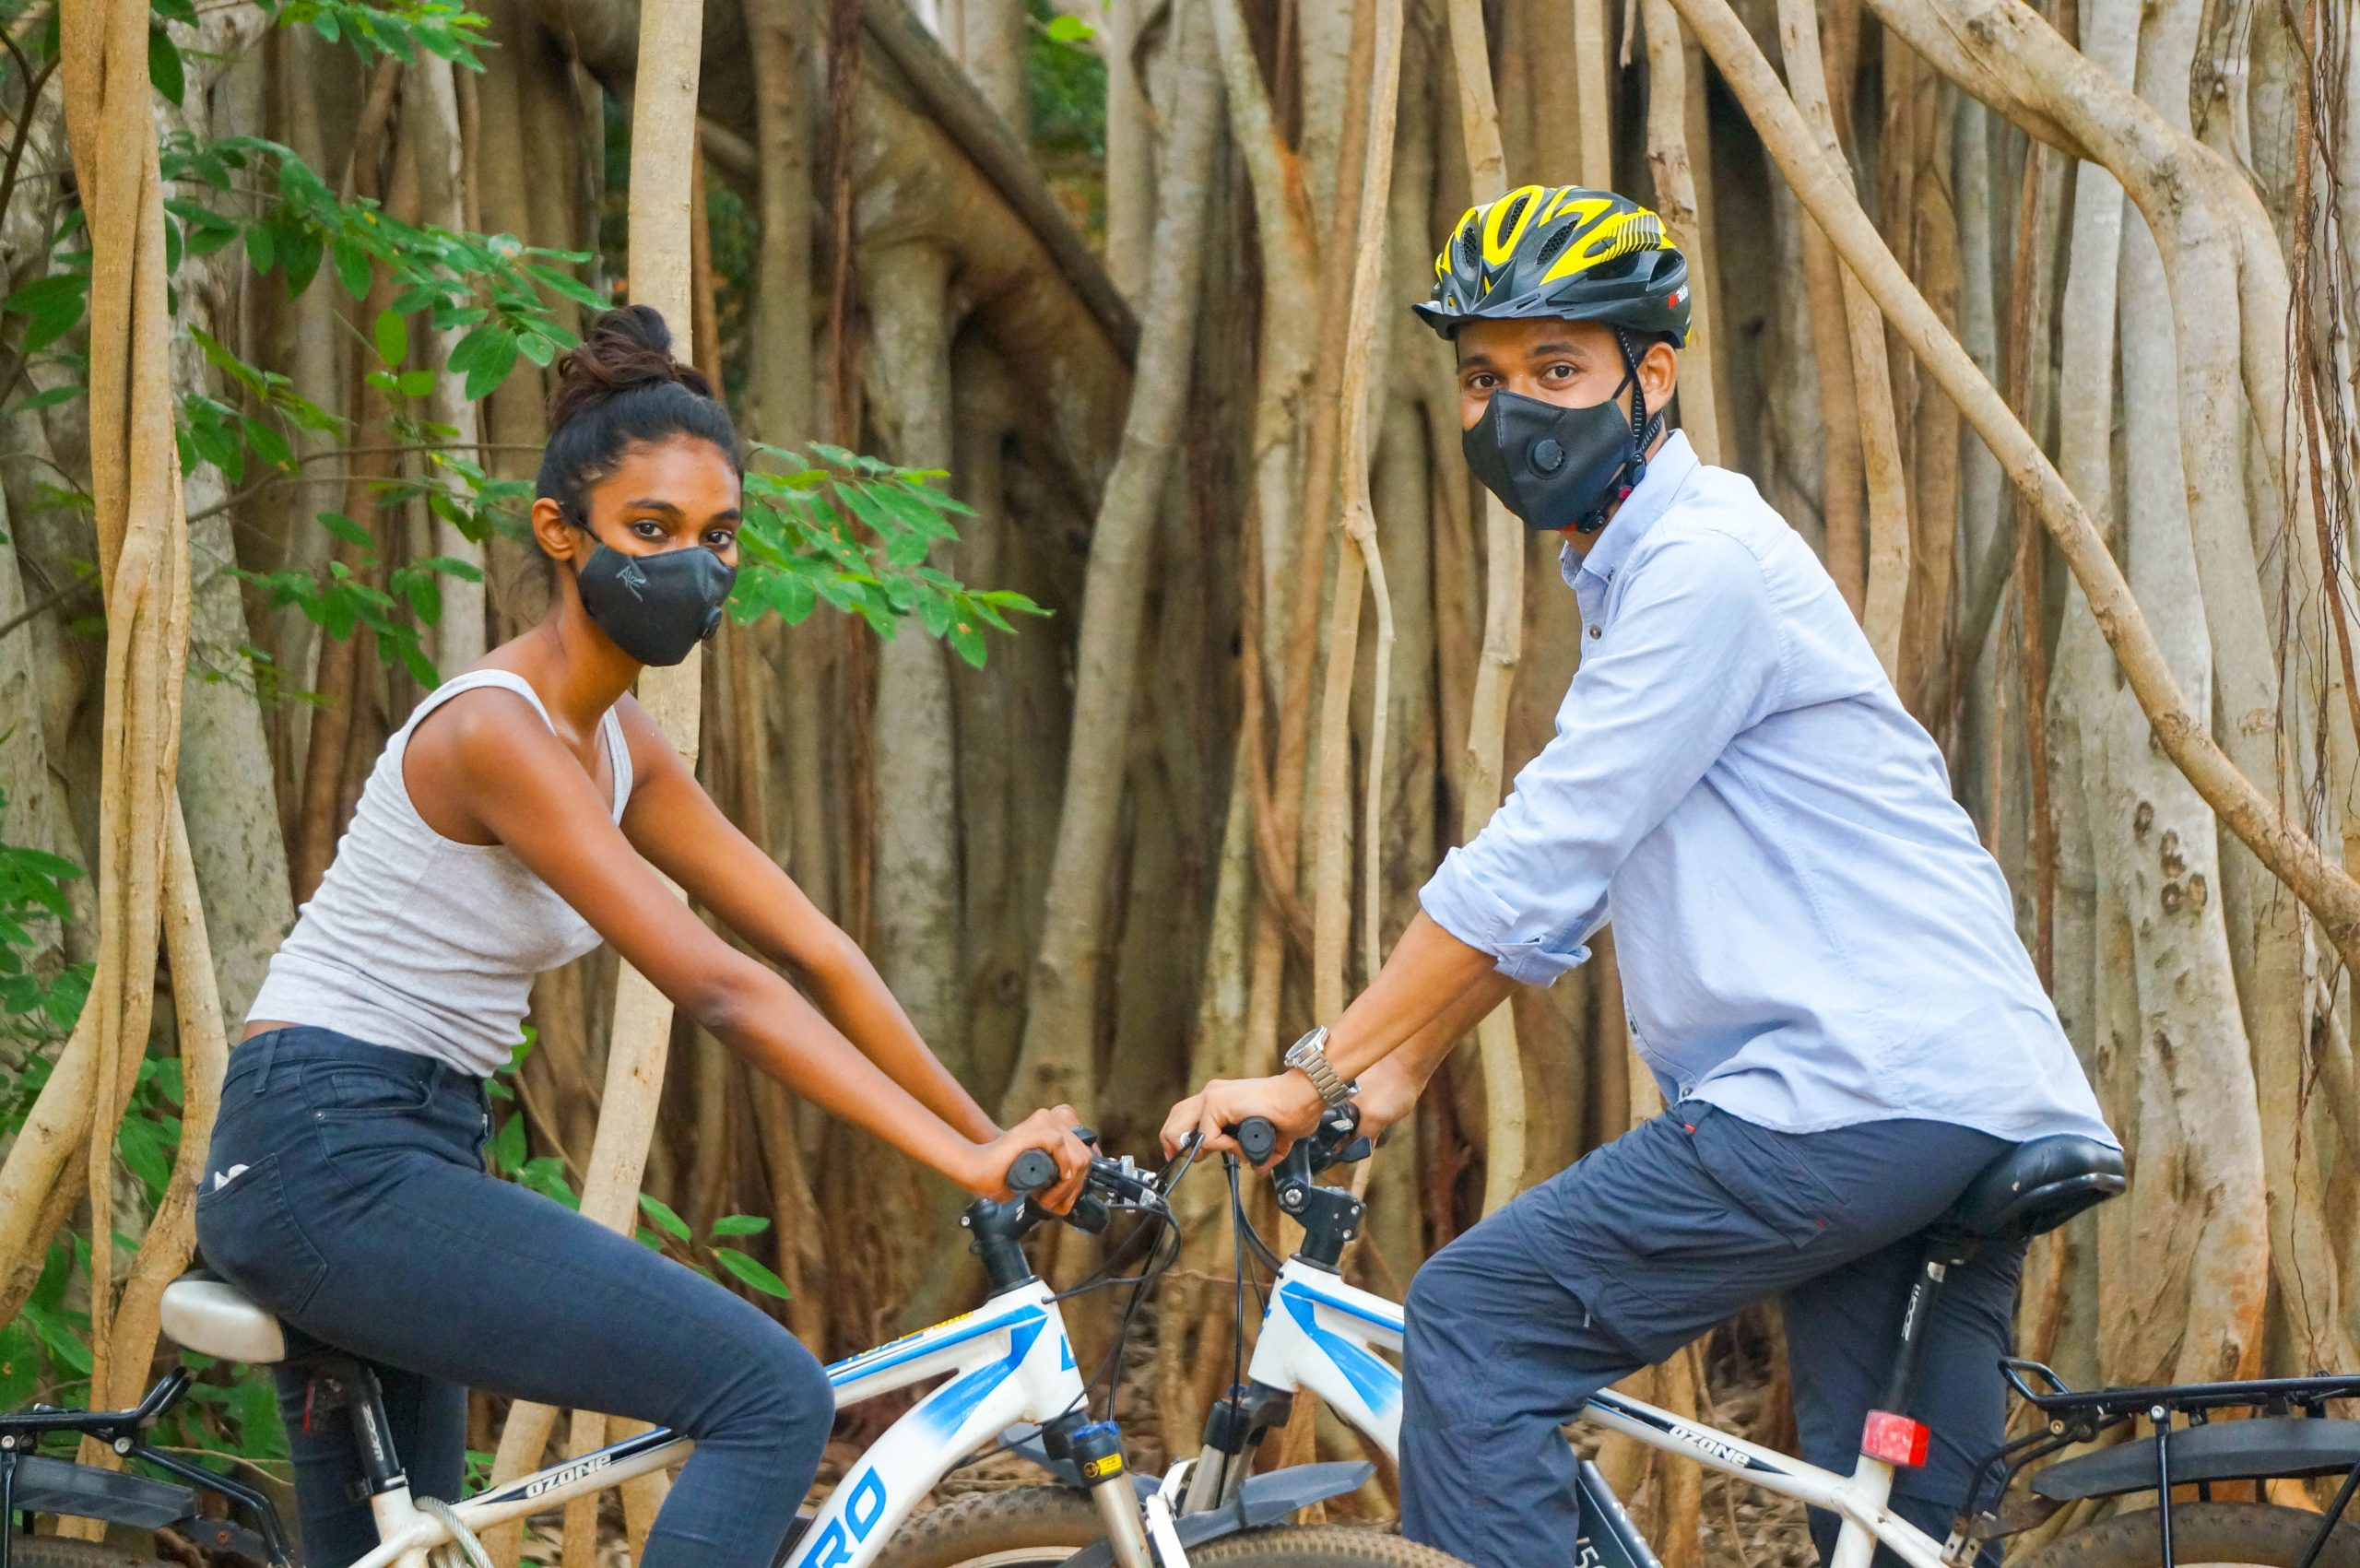 Sports masks with exhalation valve for better breathing